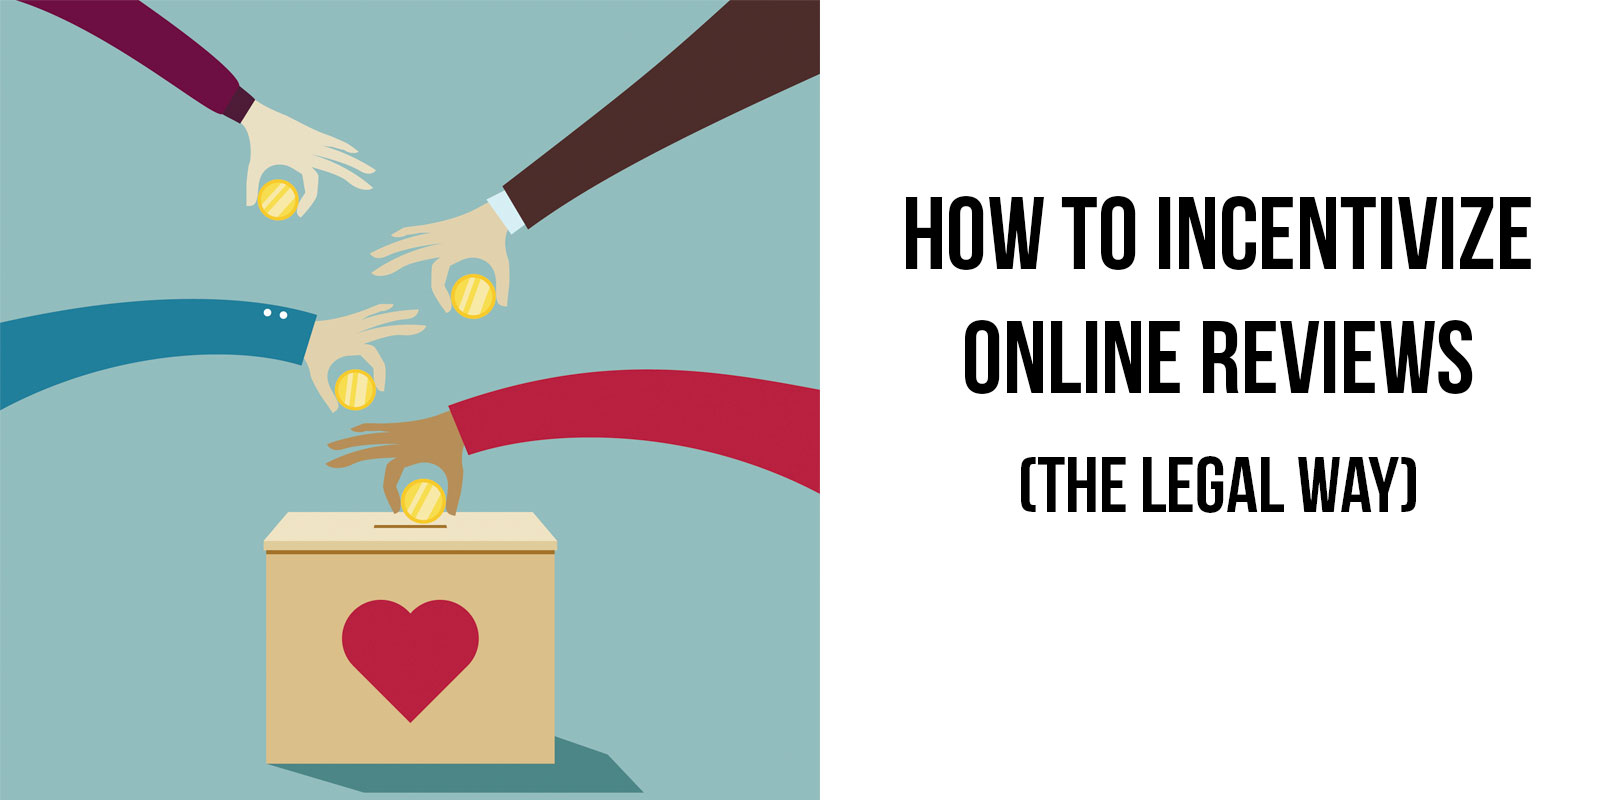 Featured Image Offer Incentive For Online Reviews – How To Do It The Legal Way